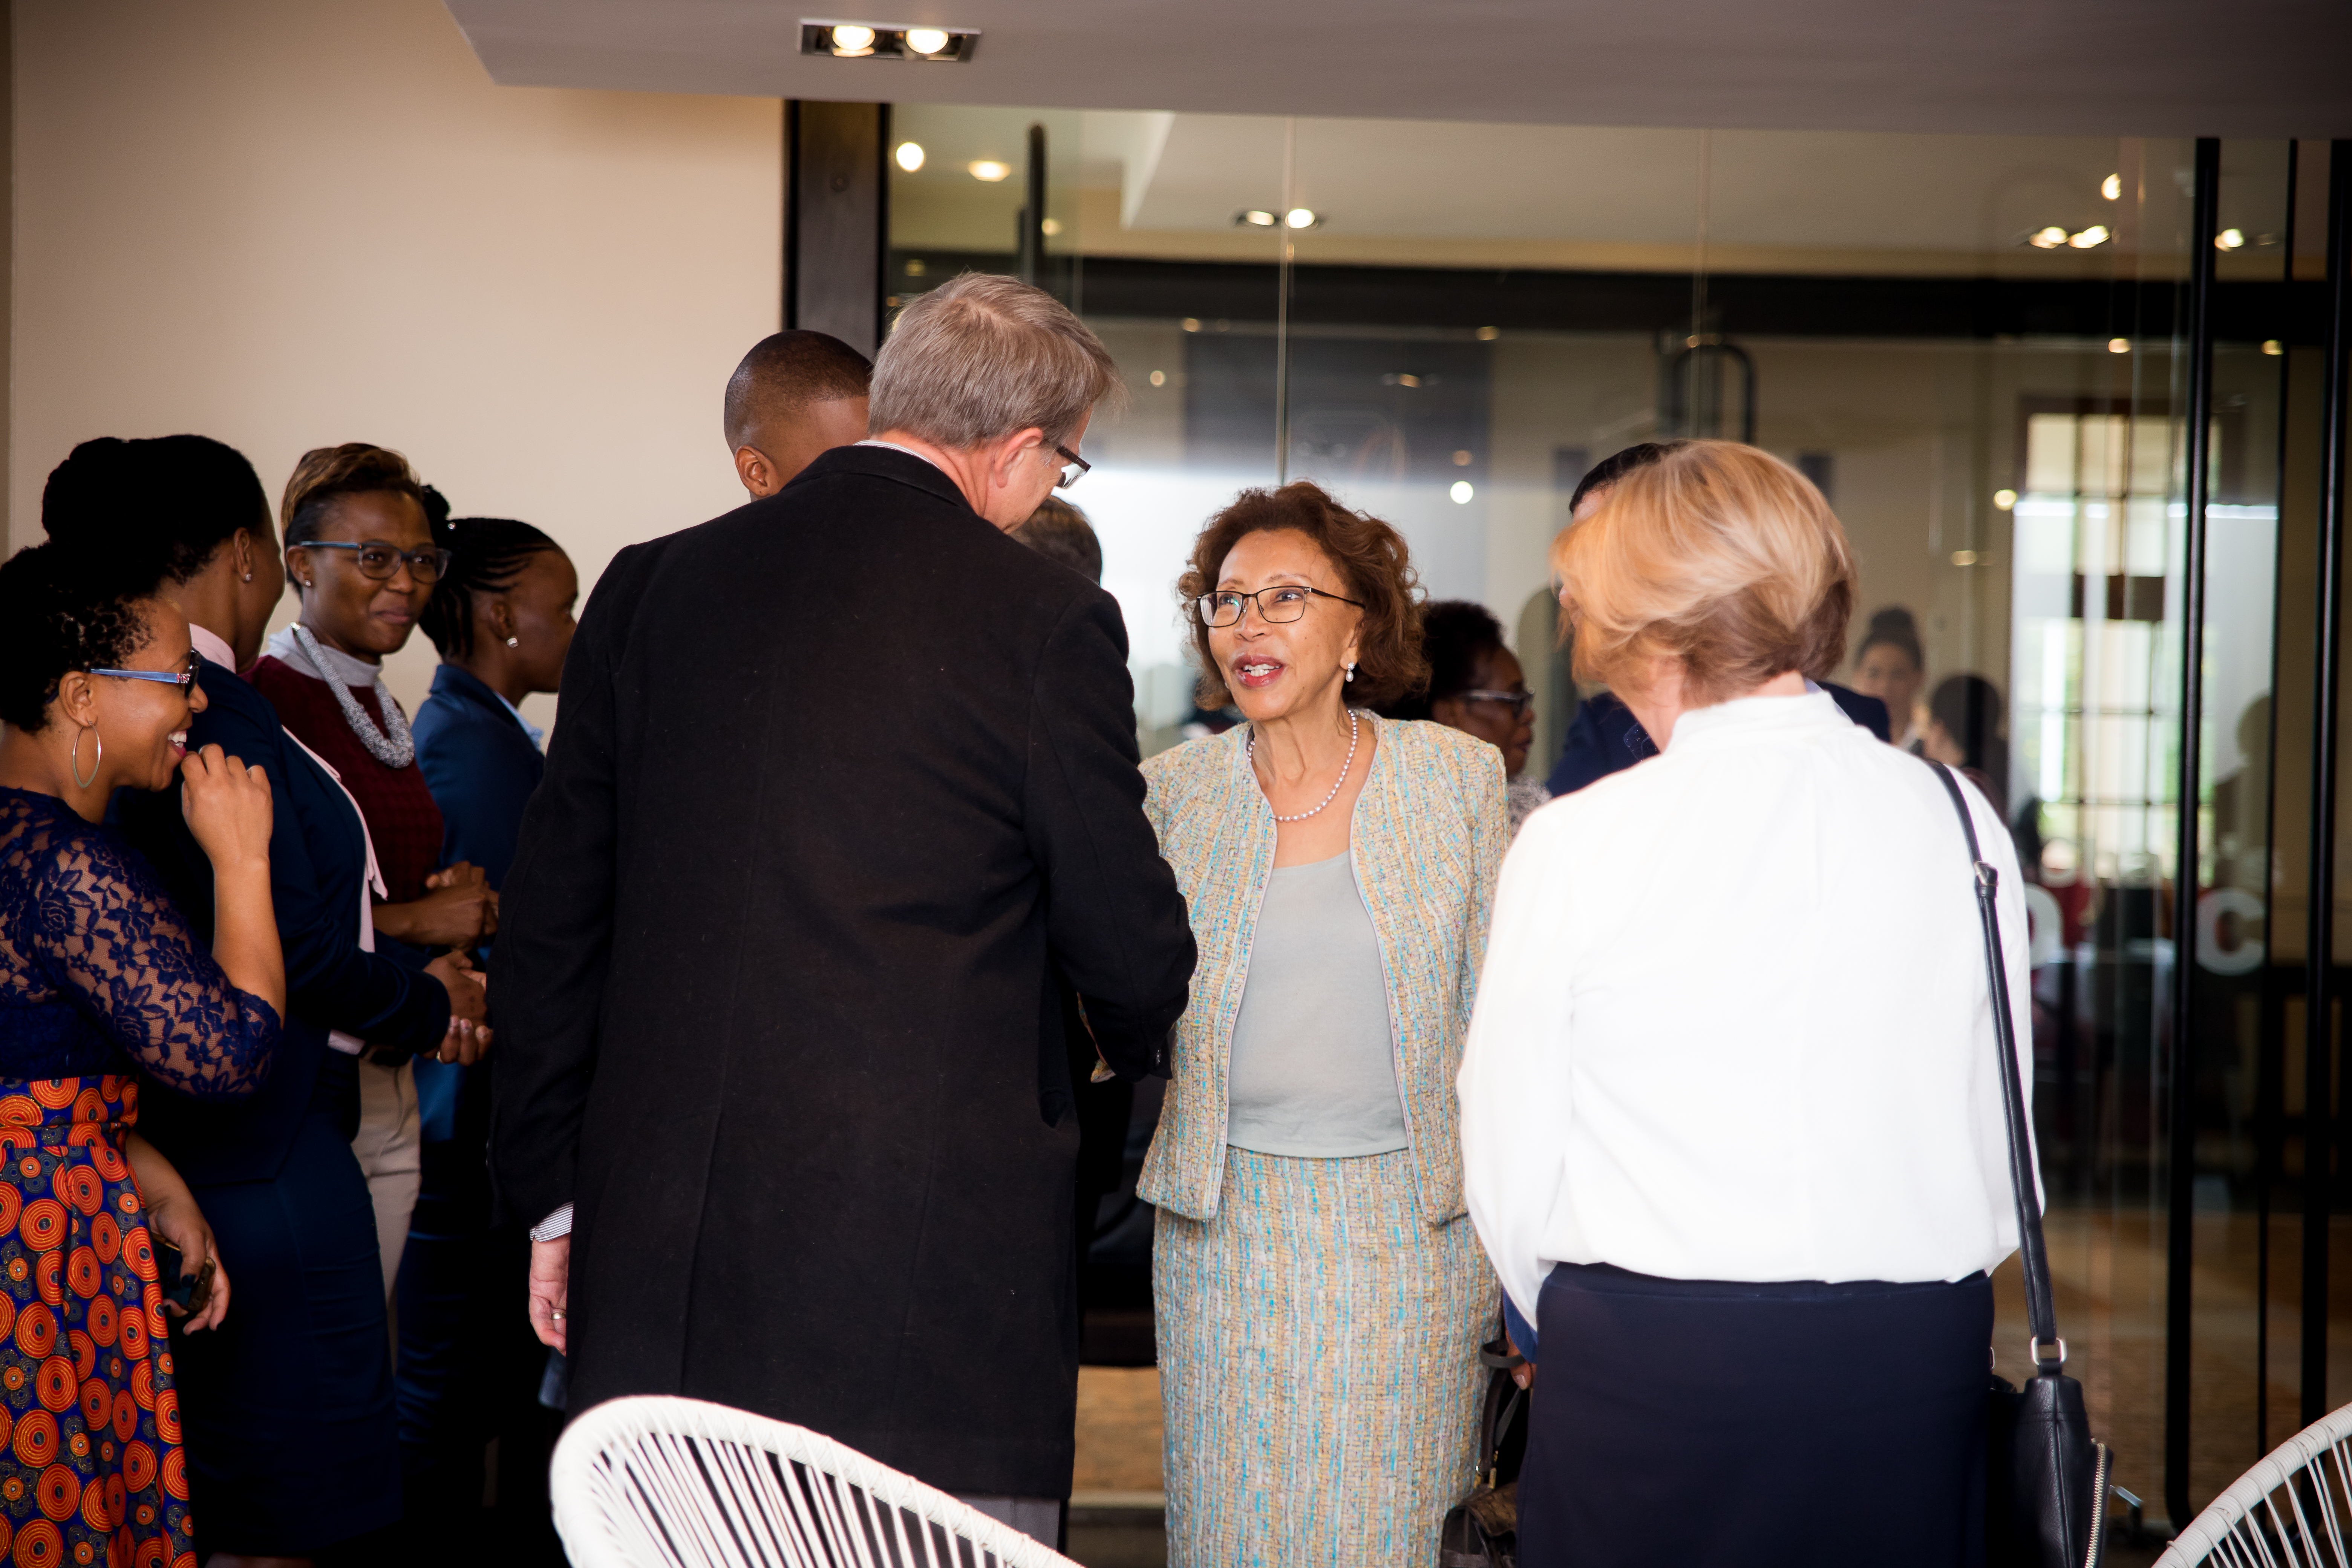 Dr Tshepo Motsepe introduced to UFS staff members